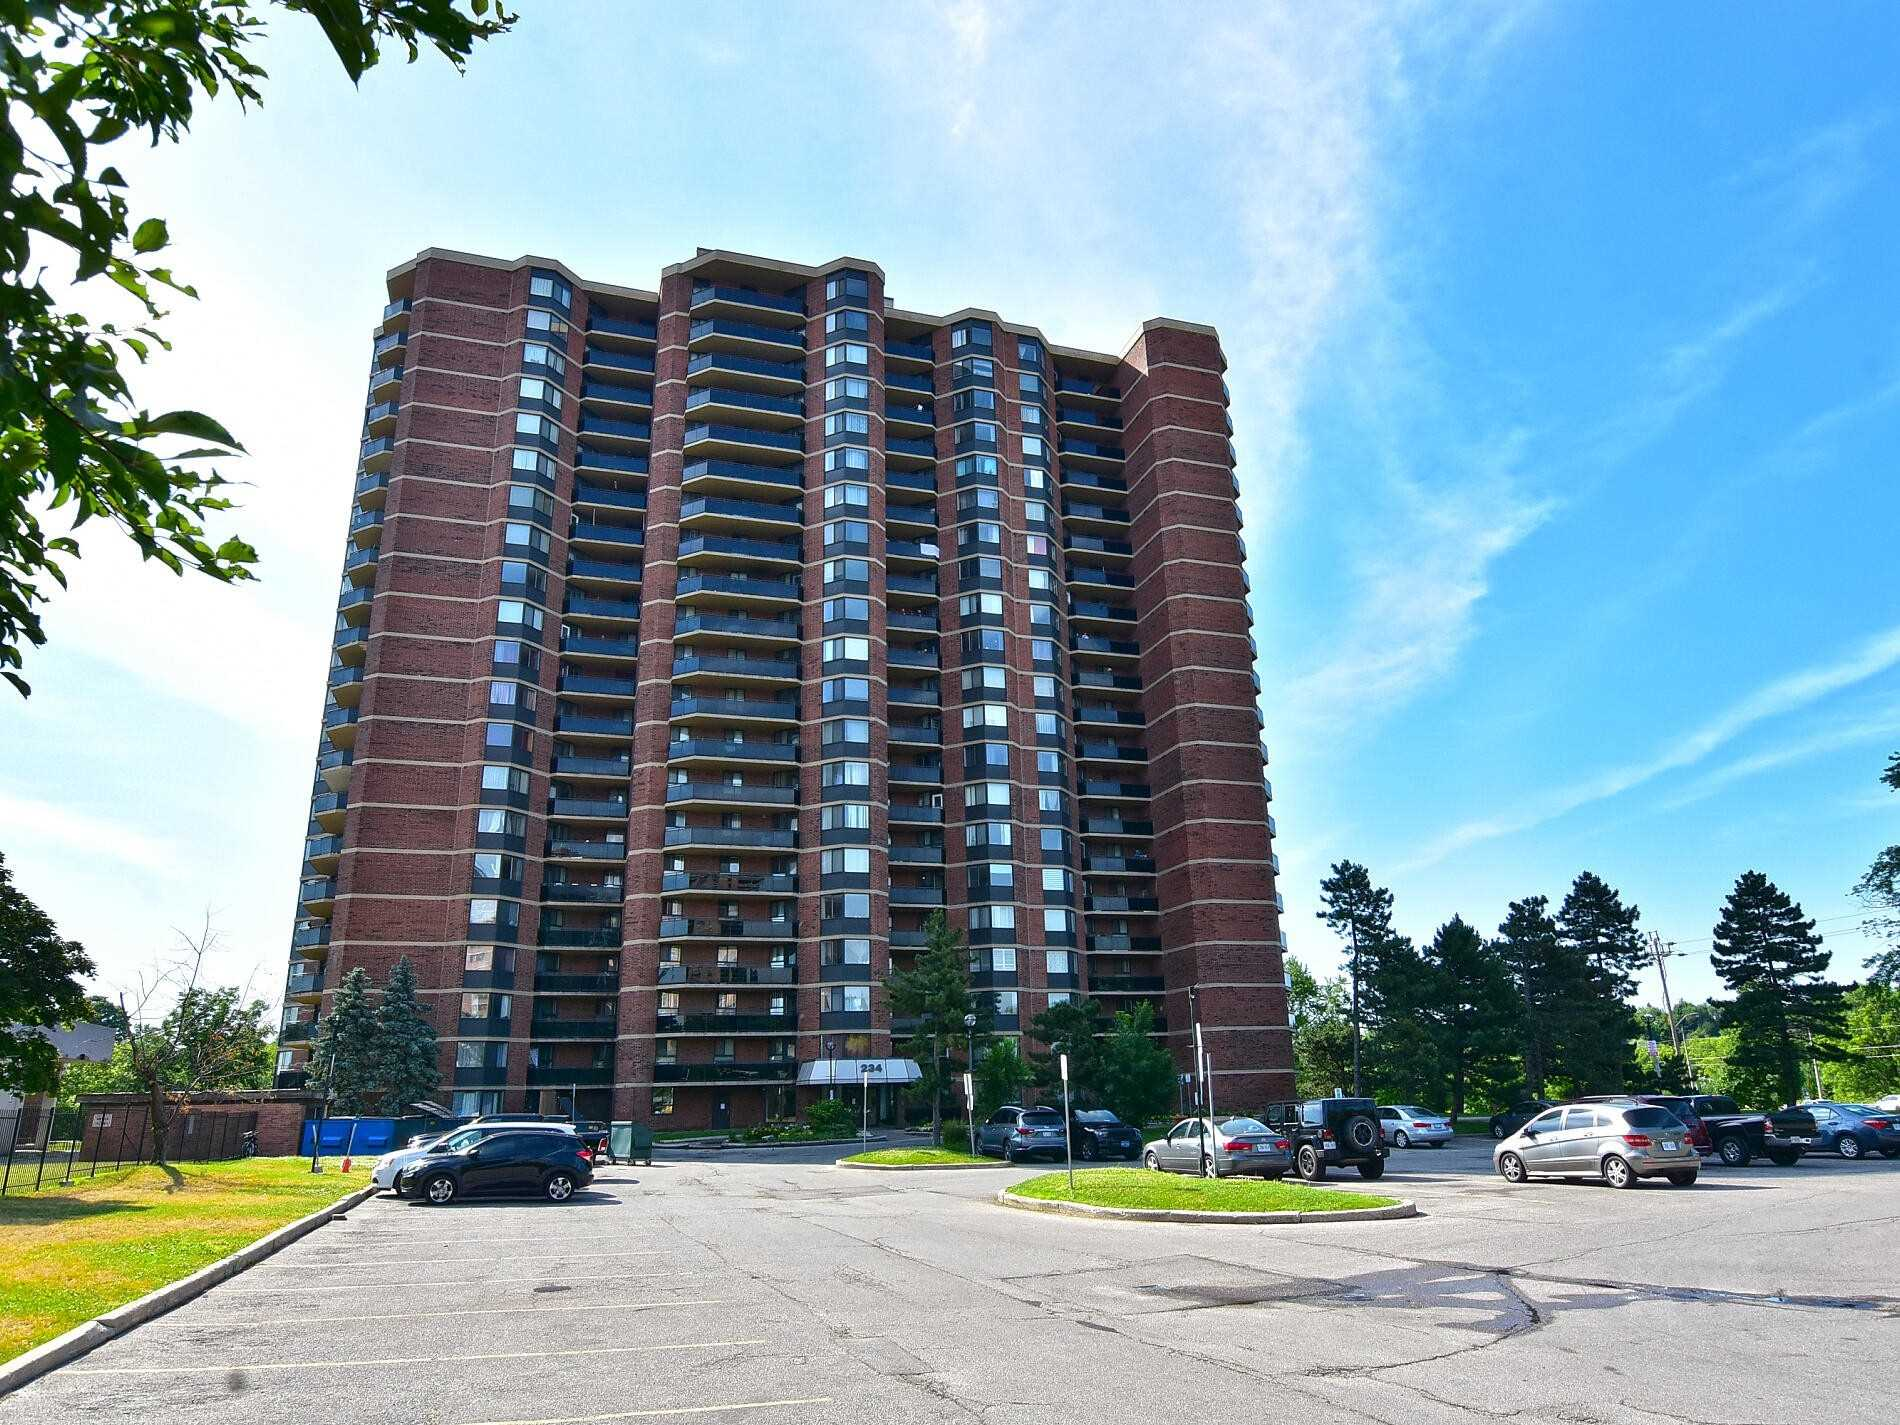 234 Albion Rd, Toronto, Ontario M9W 6A5, 2 Bedrooms Bedrooms, 5 Rooms Rooms,1 BathroomBathrooms,Condo Apt,For Sale,Albion,W4831682